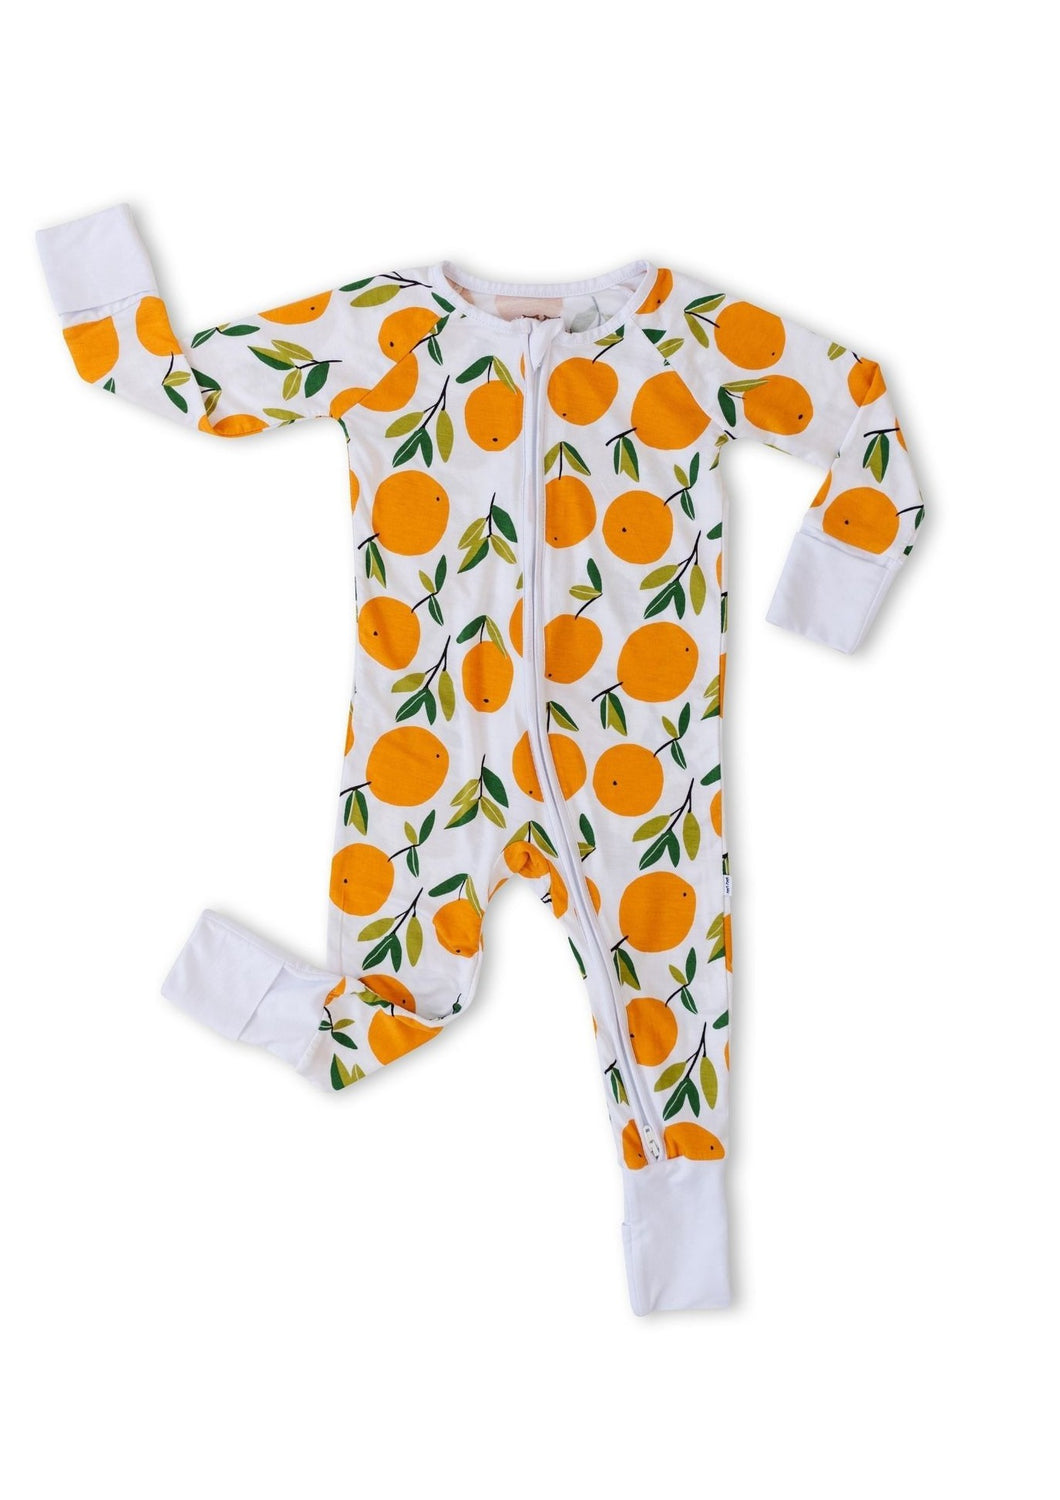 Little Sleepies Bamboo Zippy Clementines